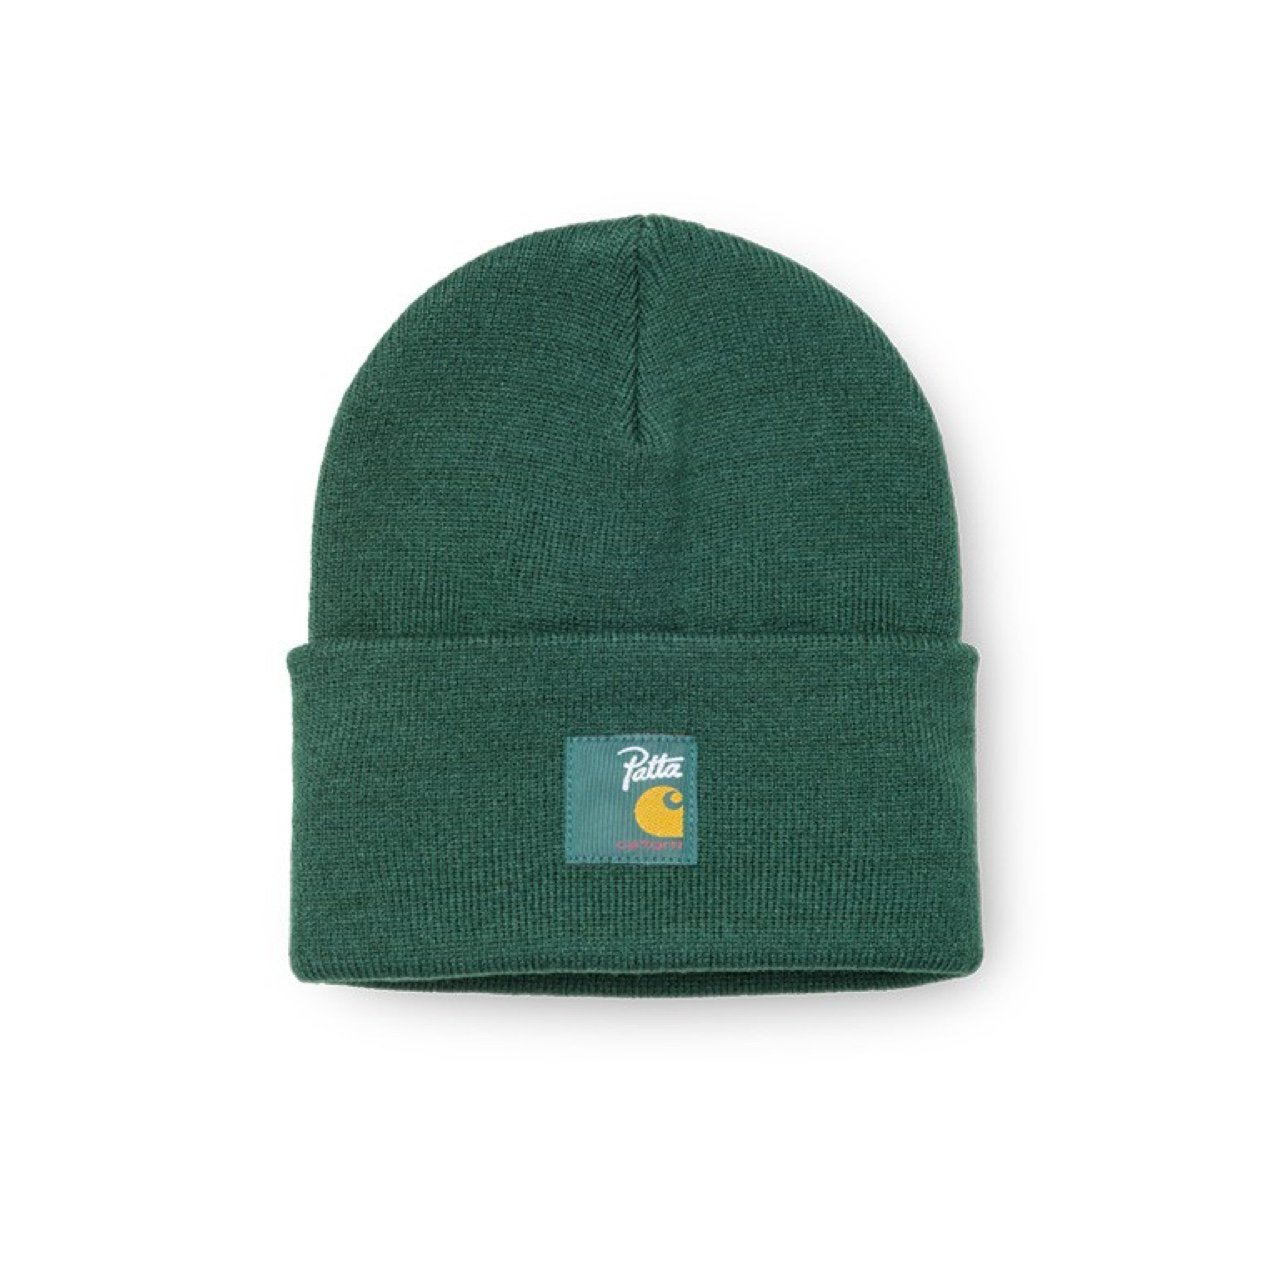 Carhartt x Patta green beanie. Bought from the Patta store a - Depop 09f42bc19ef